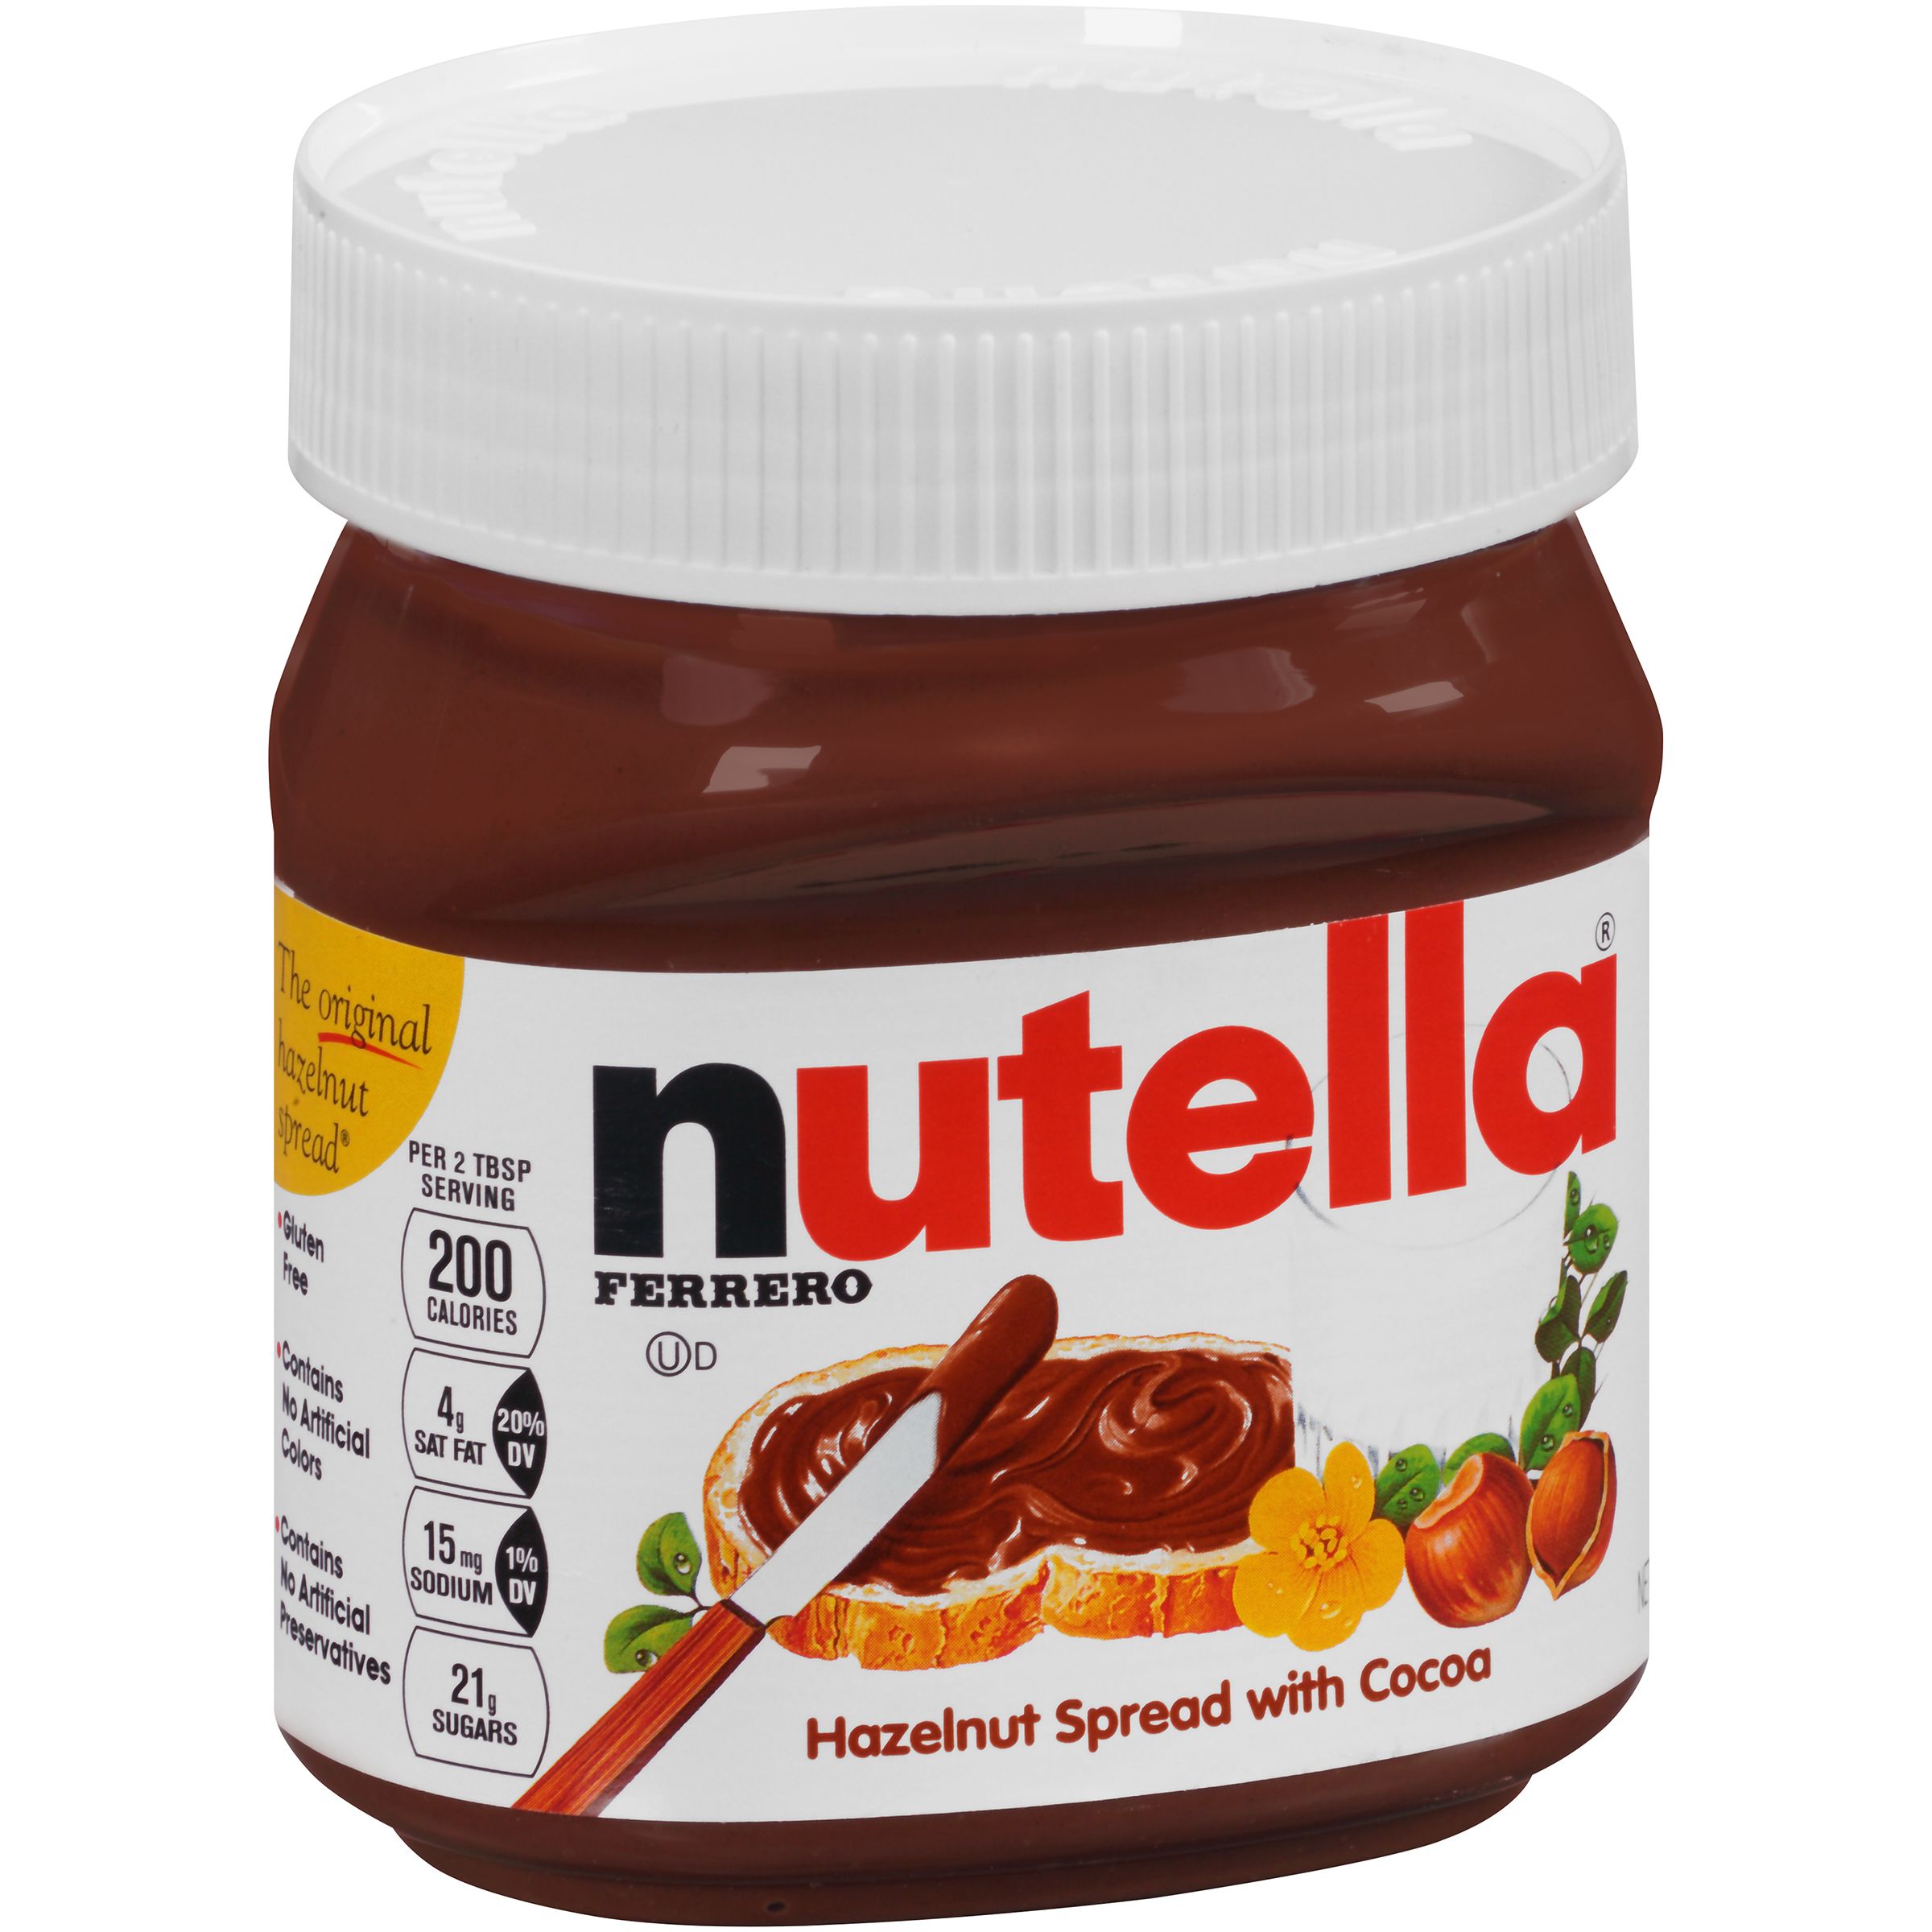 Nutella Hazelnut Spread 13 oz. Jar